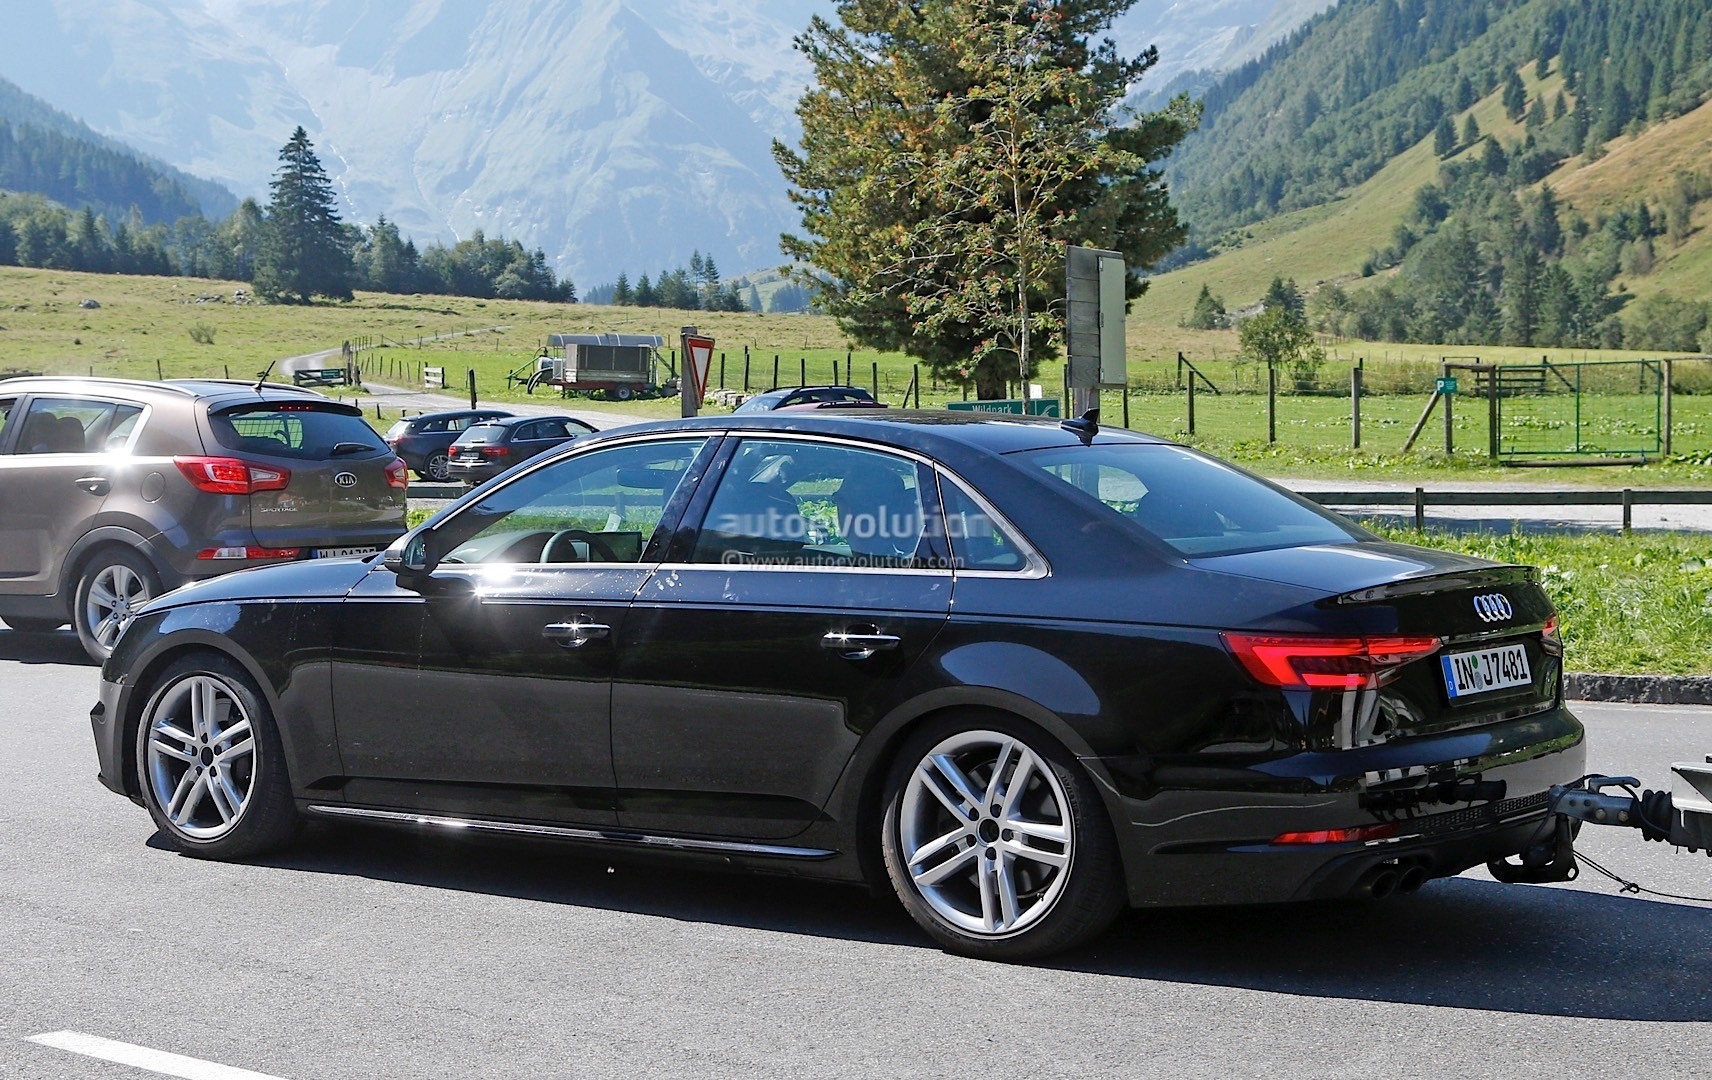 2017 Audi S4 Spotted Testing in the Alps, the Camouflage is Completely ...